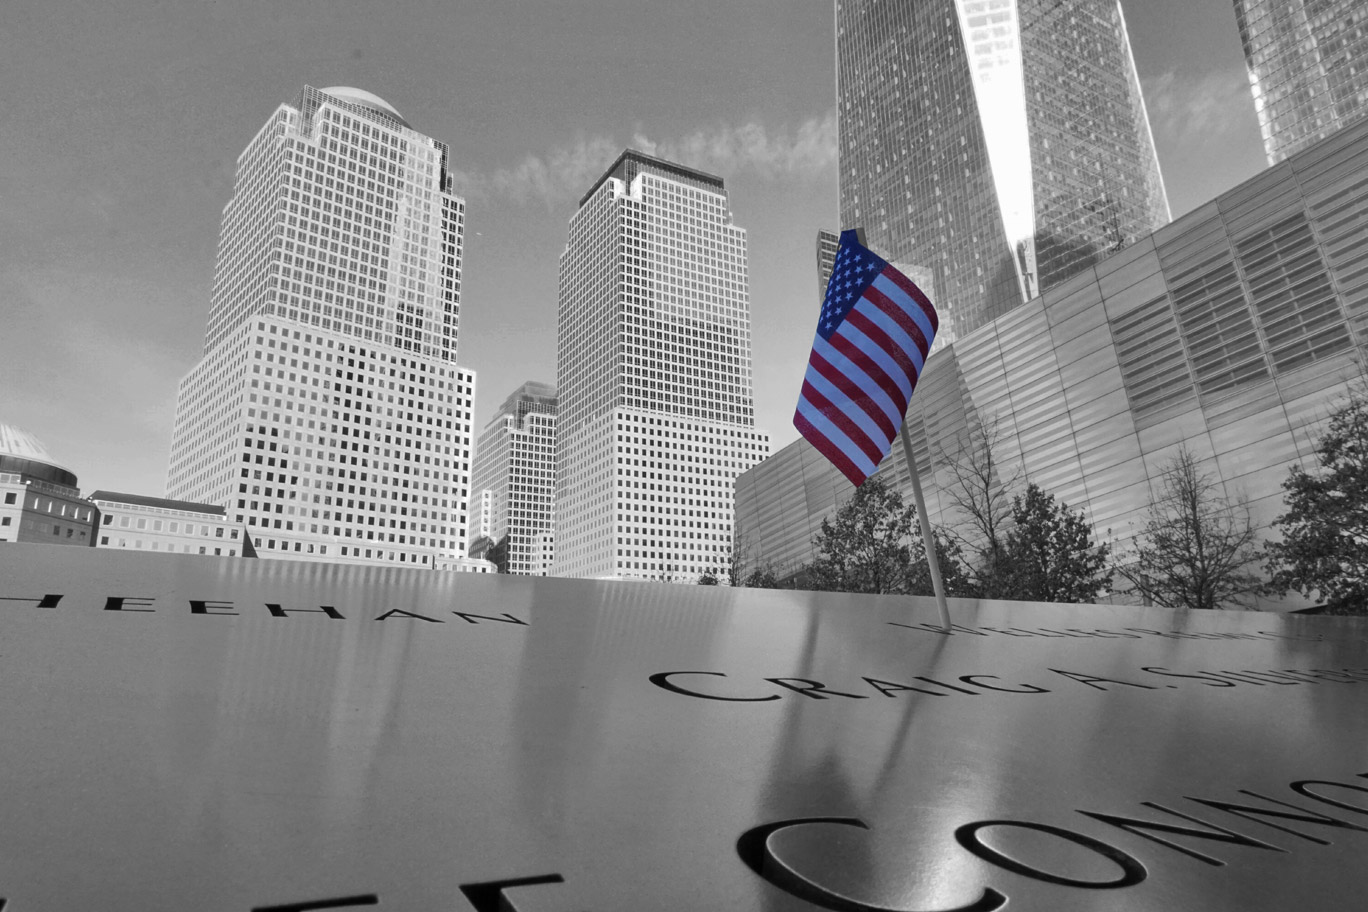 World Trade memorial site with American flag